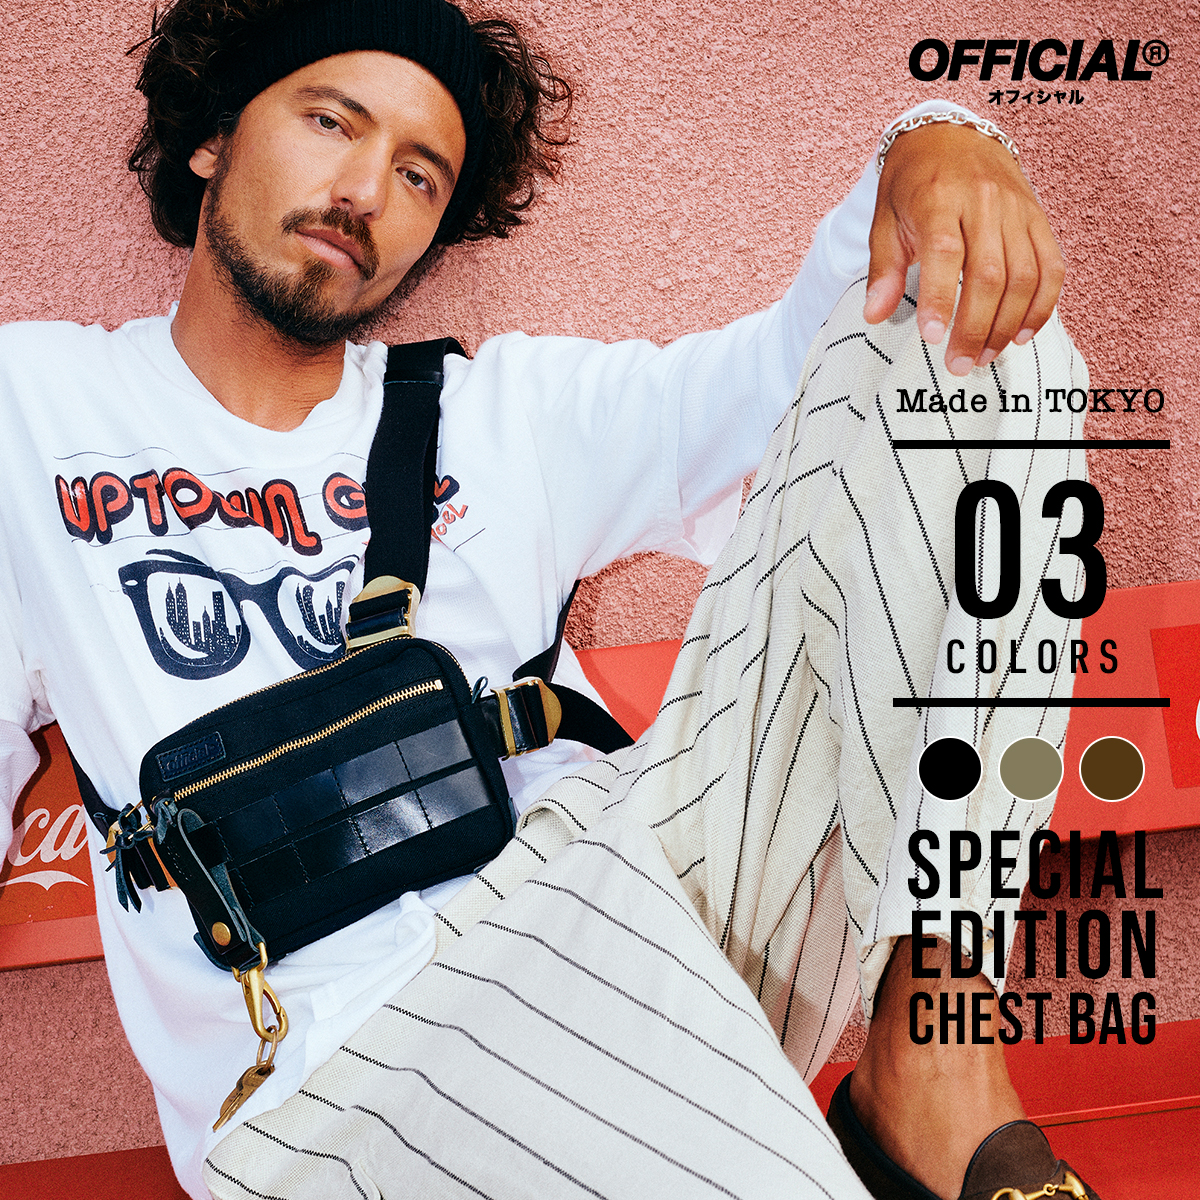 【Sサイズ】OFFICIAL Made in TOKYO SPECIAL EDITION CHEST BAG